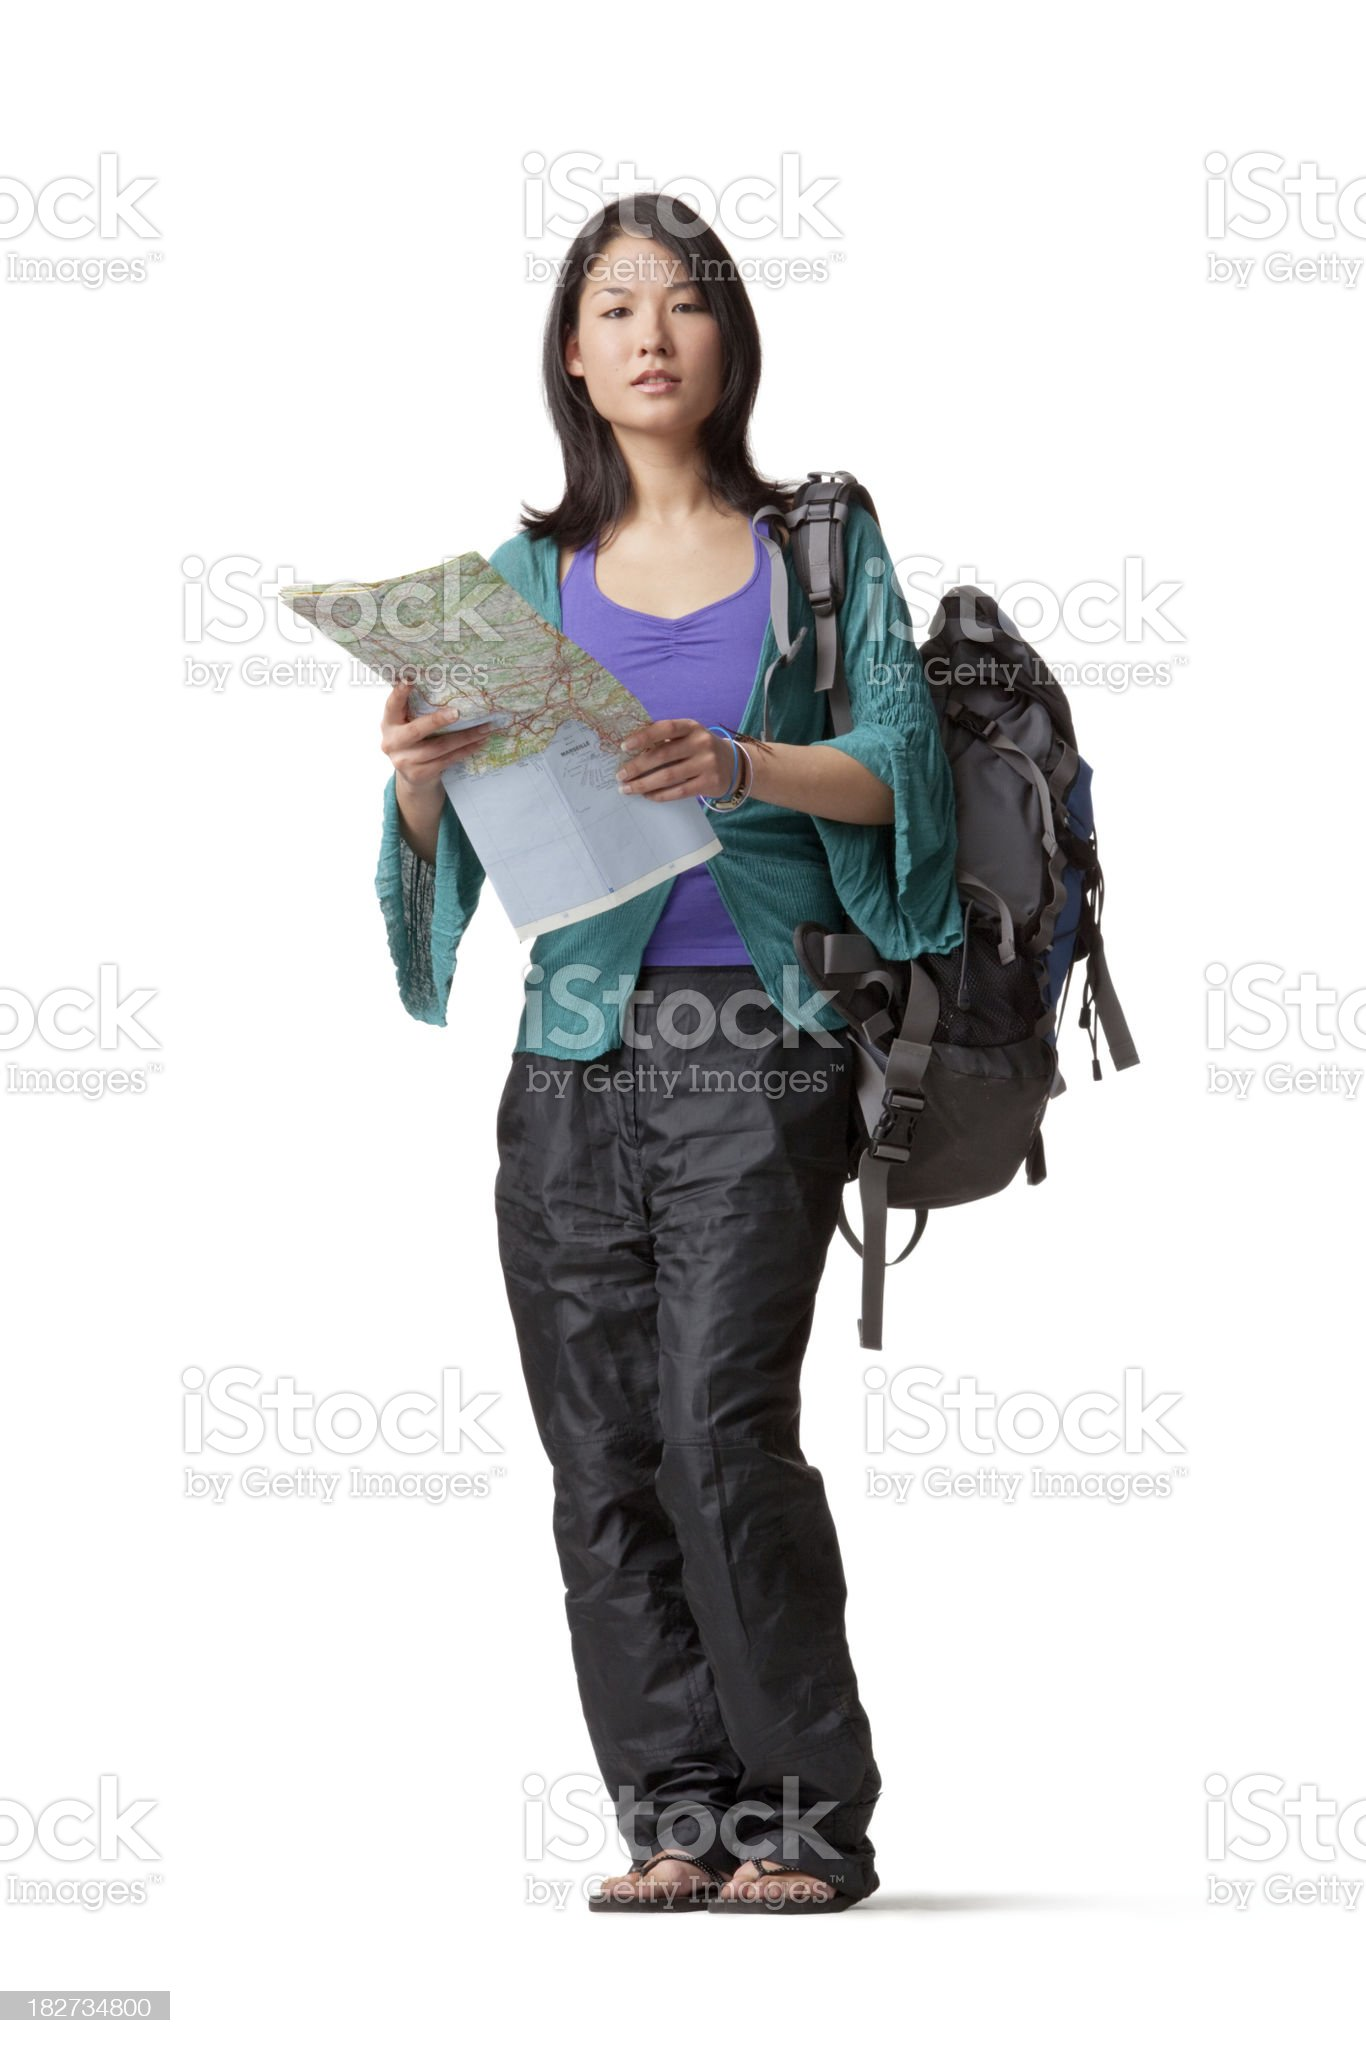 People: Asian Tourist with Map royalty-free stock photo